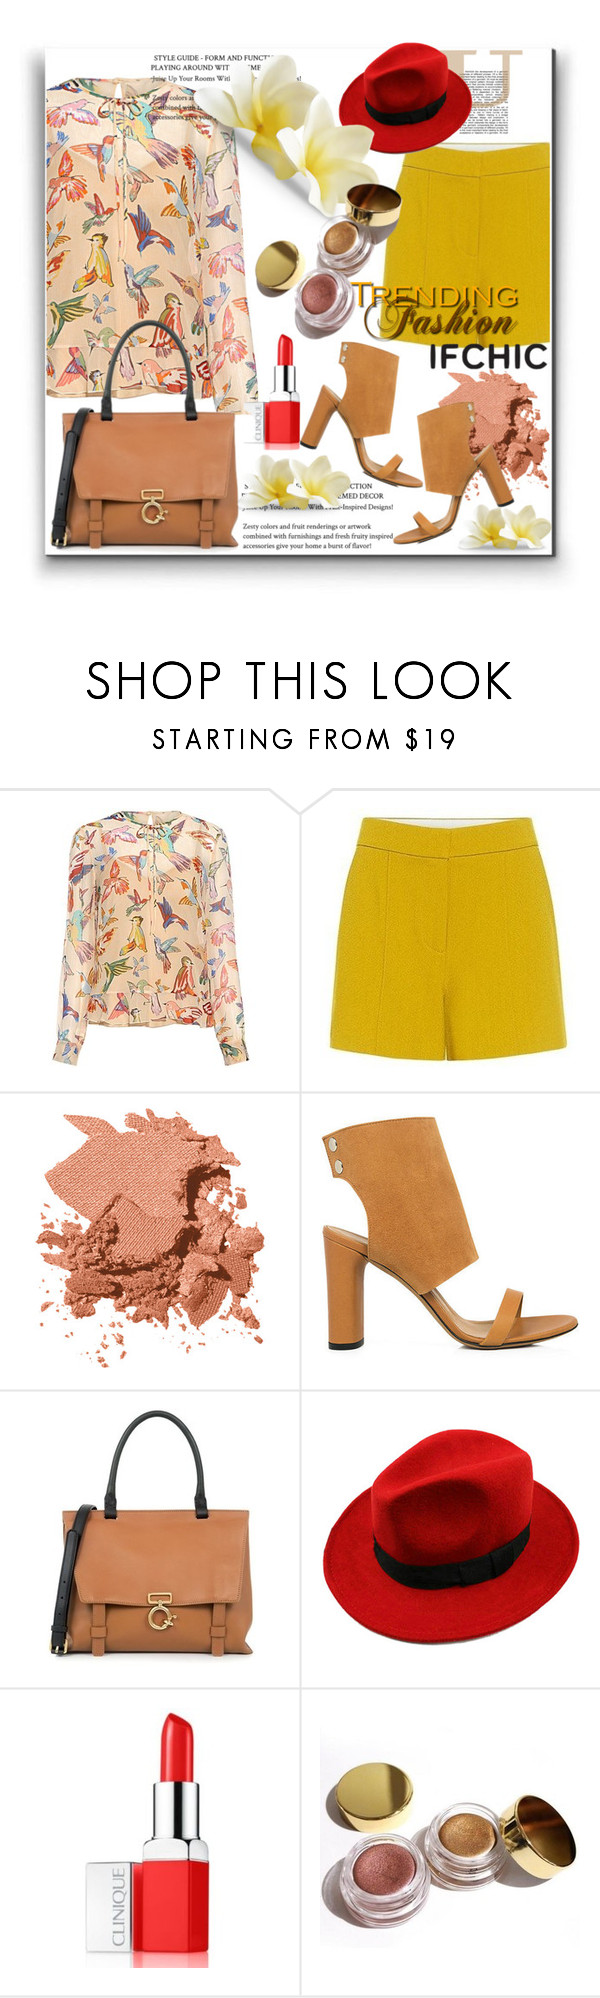 """Summer Sale IFCHIC"" by pesanjsp ❤ liked on Polyvore featuring RED Valentino, A.L.C., Bobbi Brown Cosmetics, IRO, WithChic, Clinique, Kylie Cosmetics, summersale and ifchic"